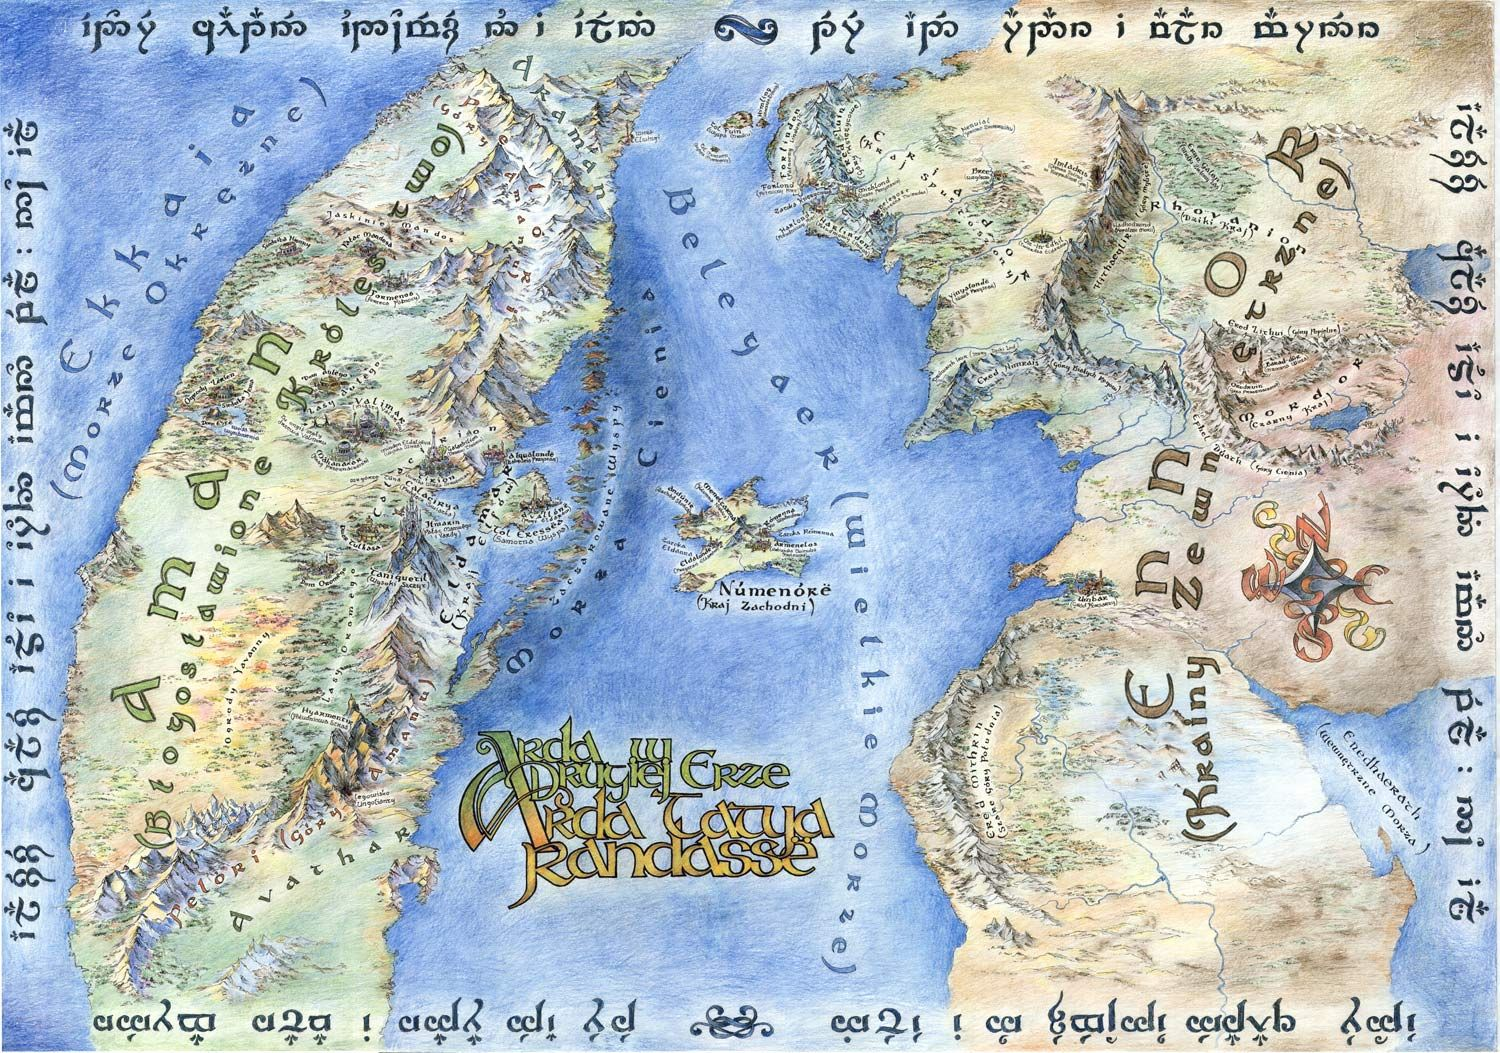 Maps of middle earth first age rich and strange aeons minute maps of middle earth first age rich and strange aeons minute clinic books gumiabroncs Gallery